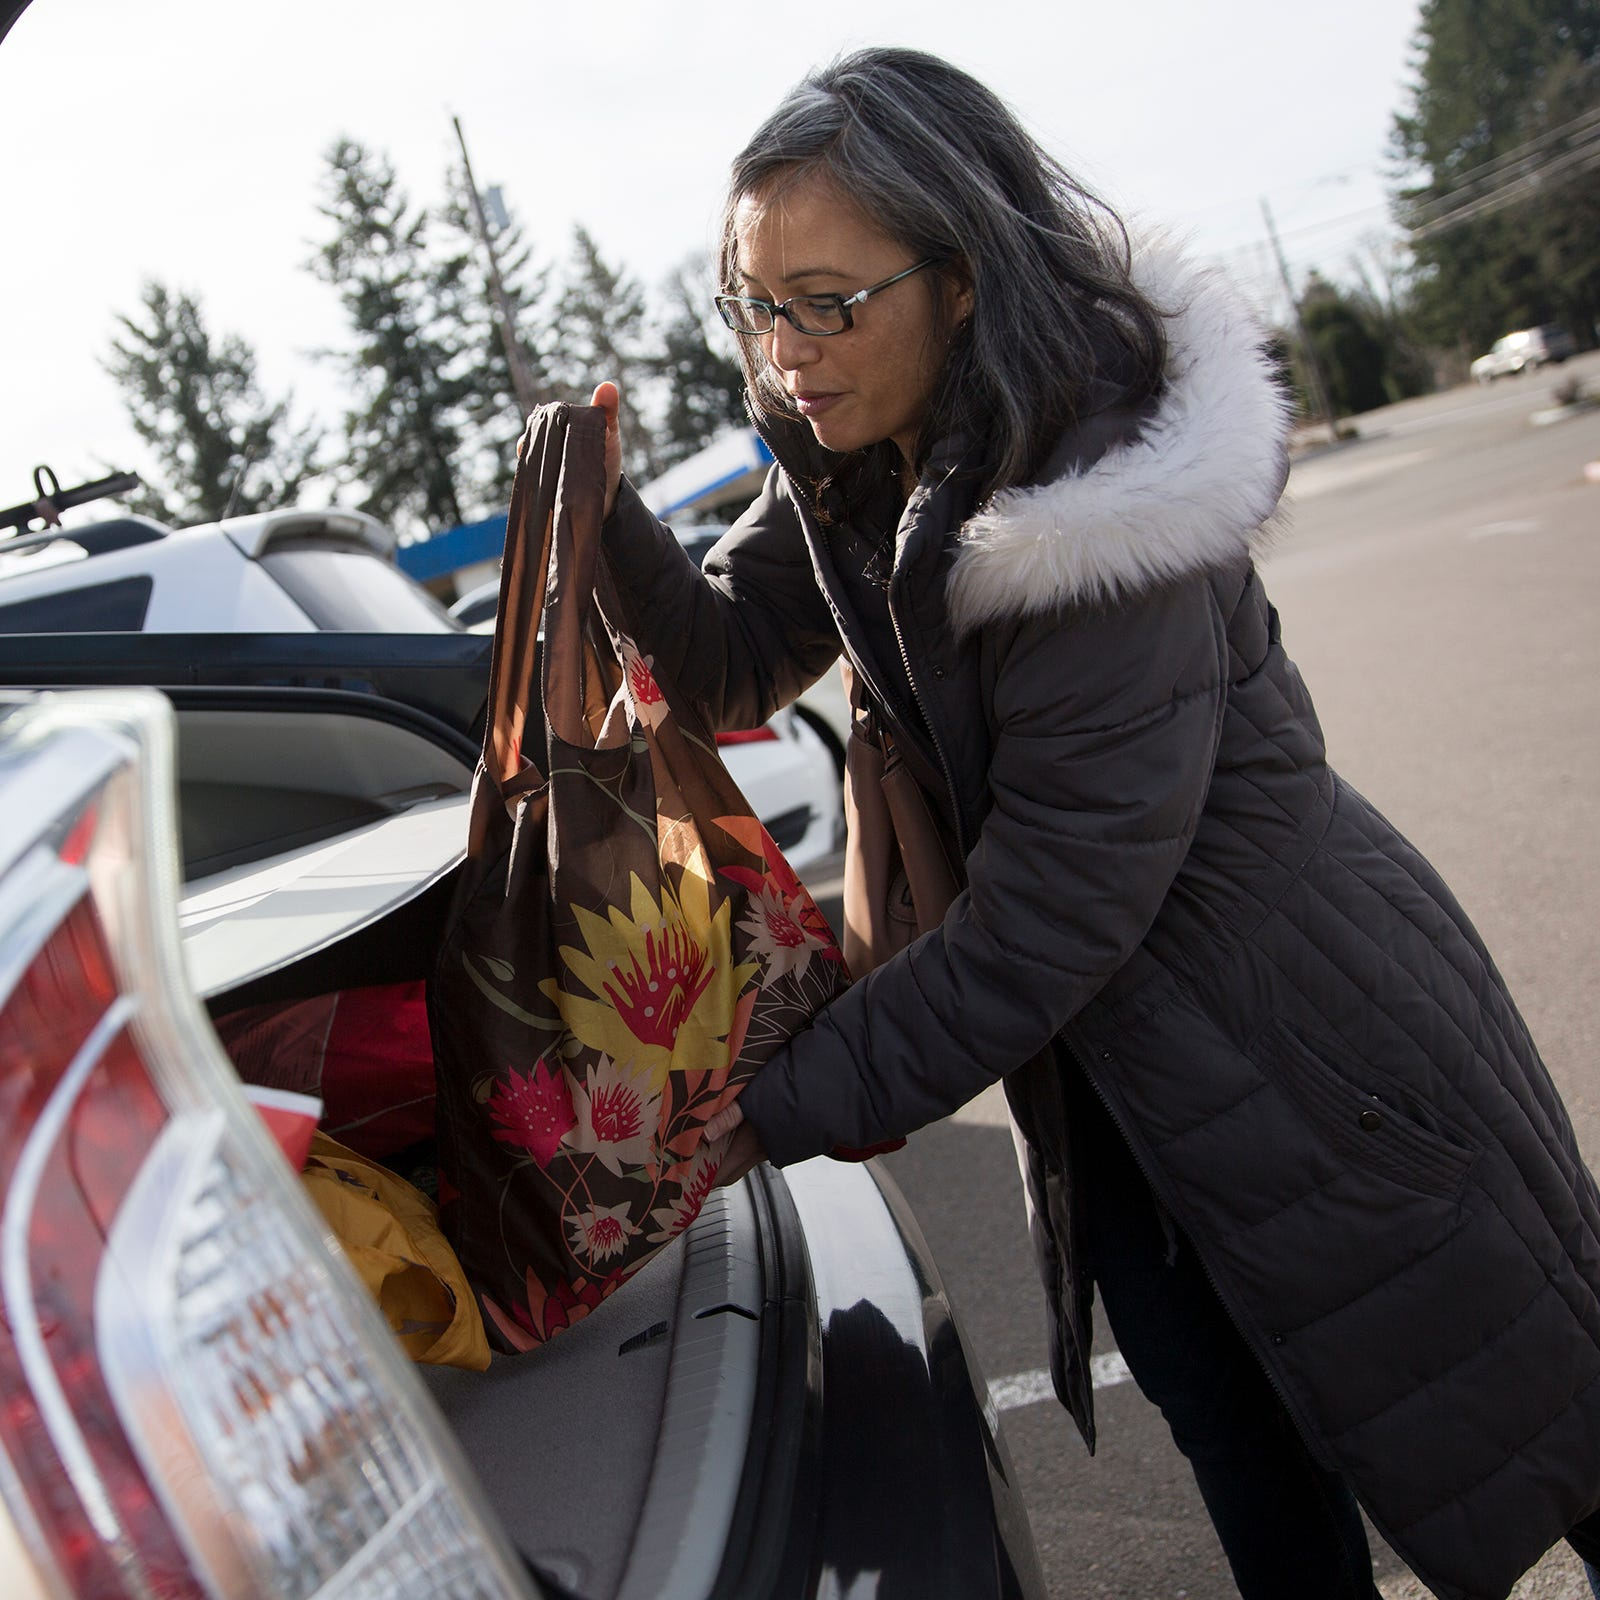 Say hello to reusable bags: Large Salem retailers to scrap plastic shopping bags